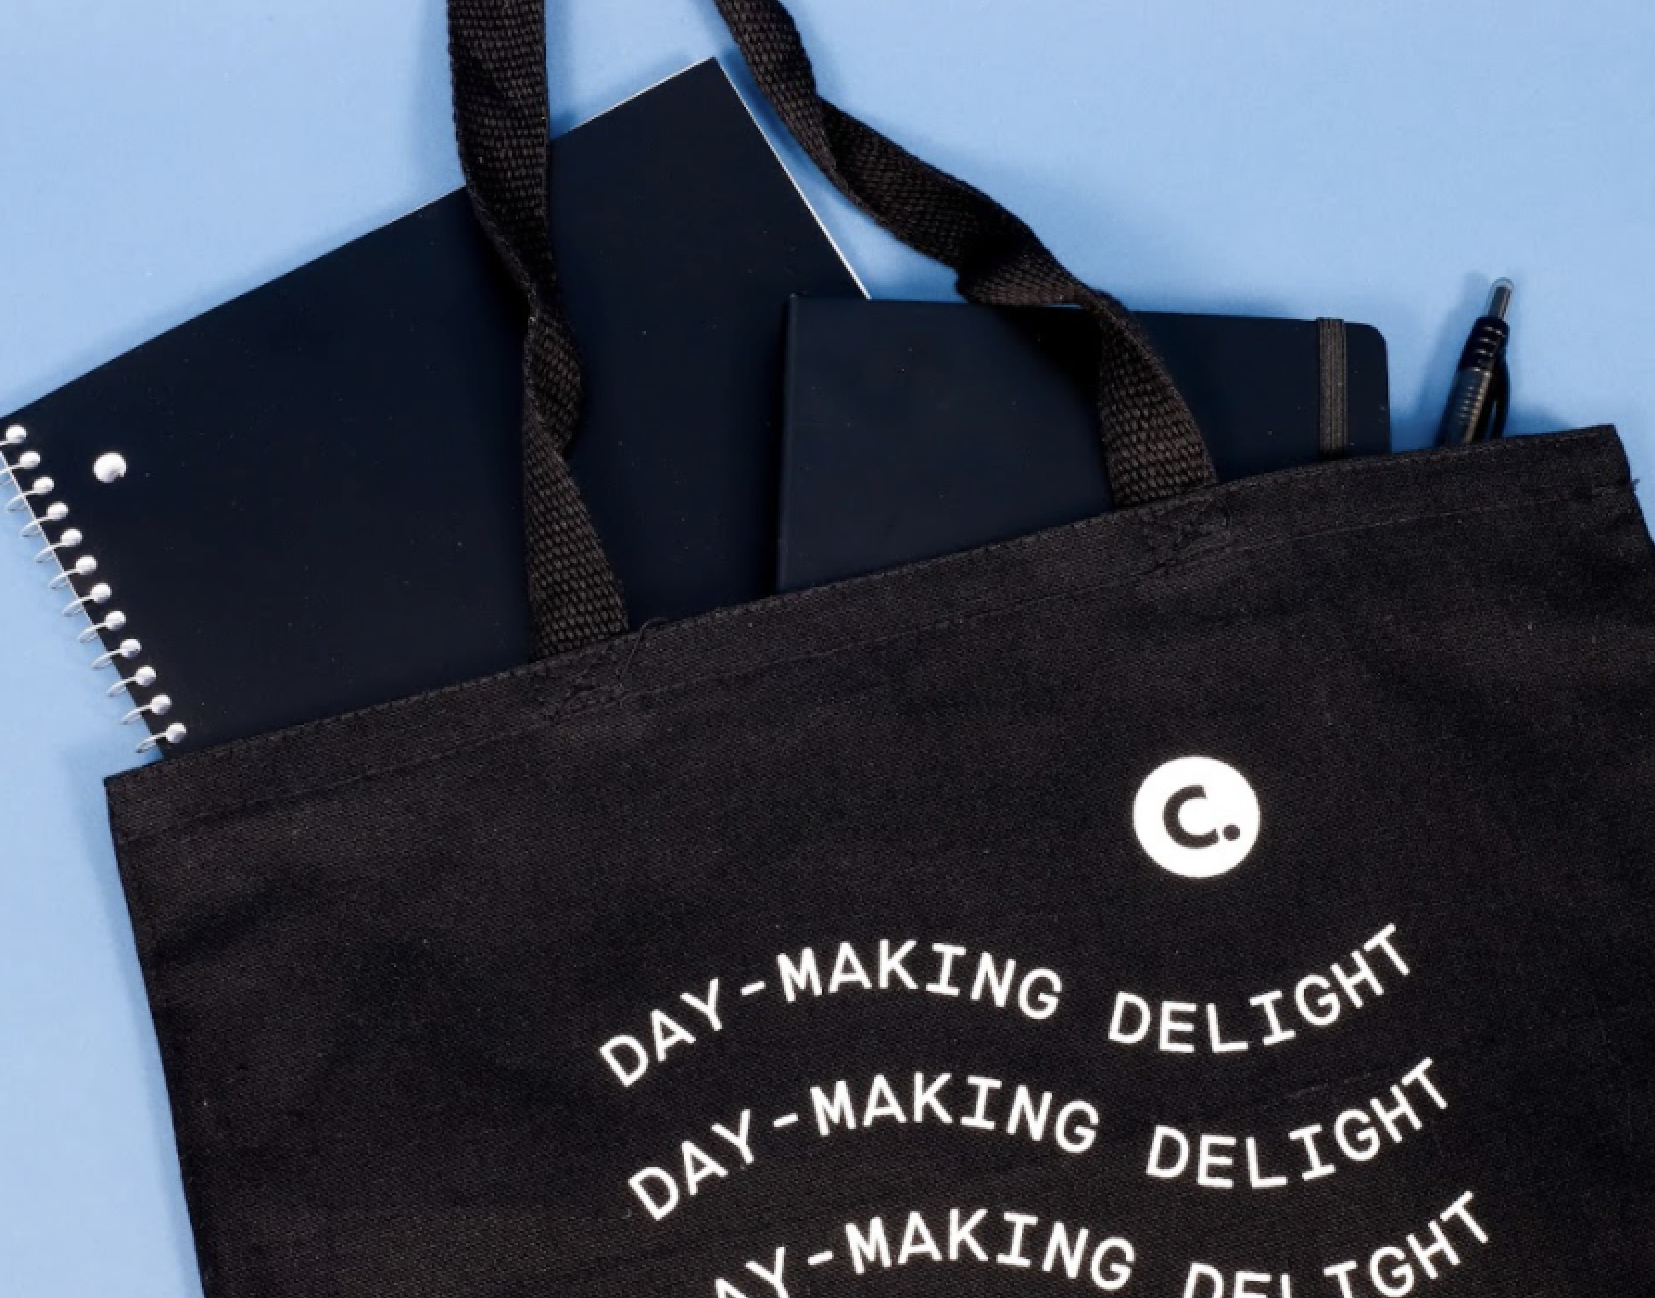 A Corkcicle tote bag filled with pens, notebook, and more.